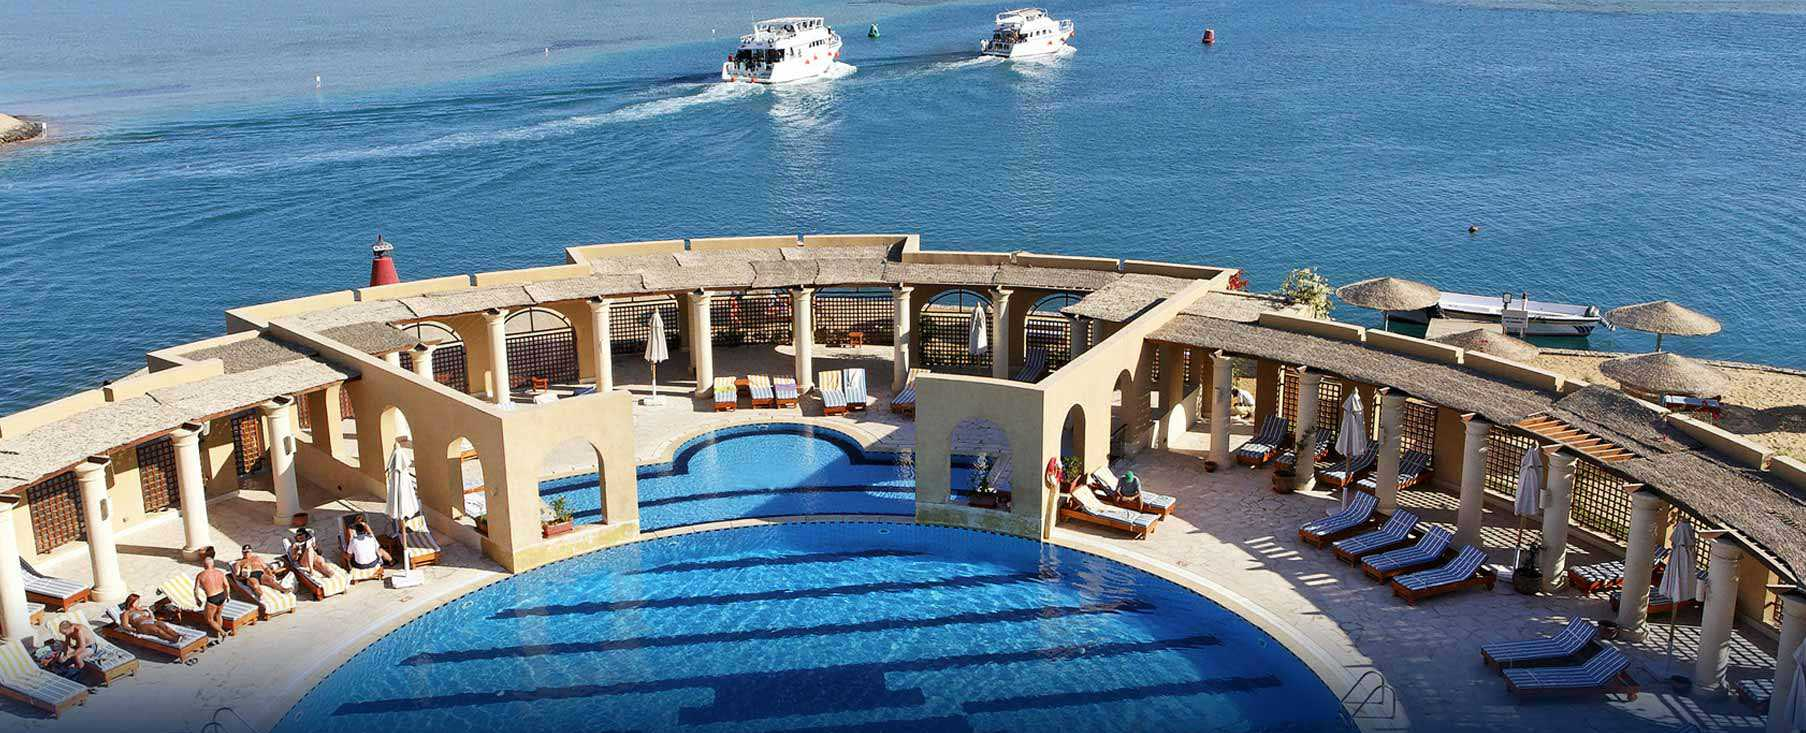 Holidays to hurghada - Sunny beach pools ...